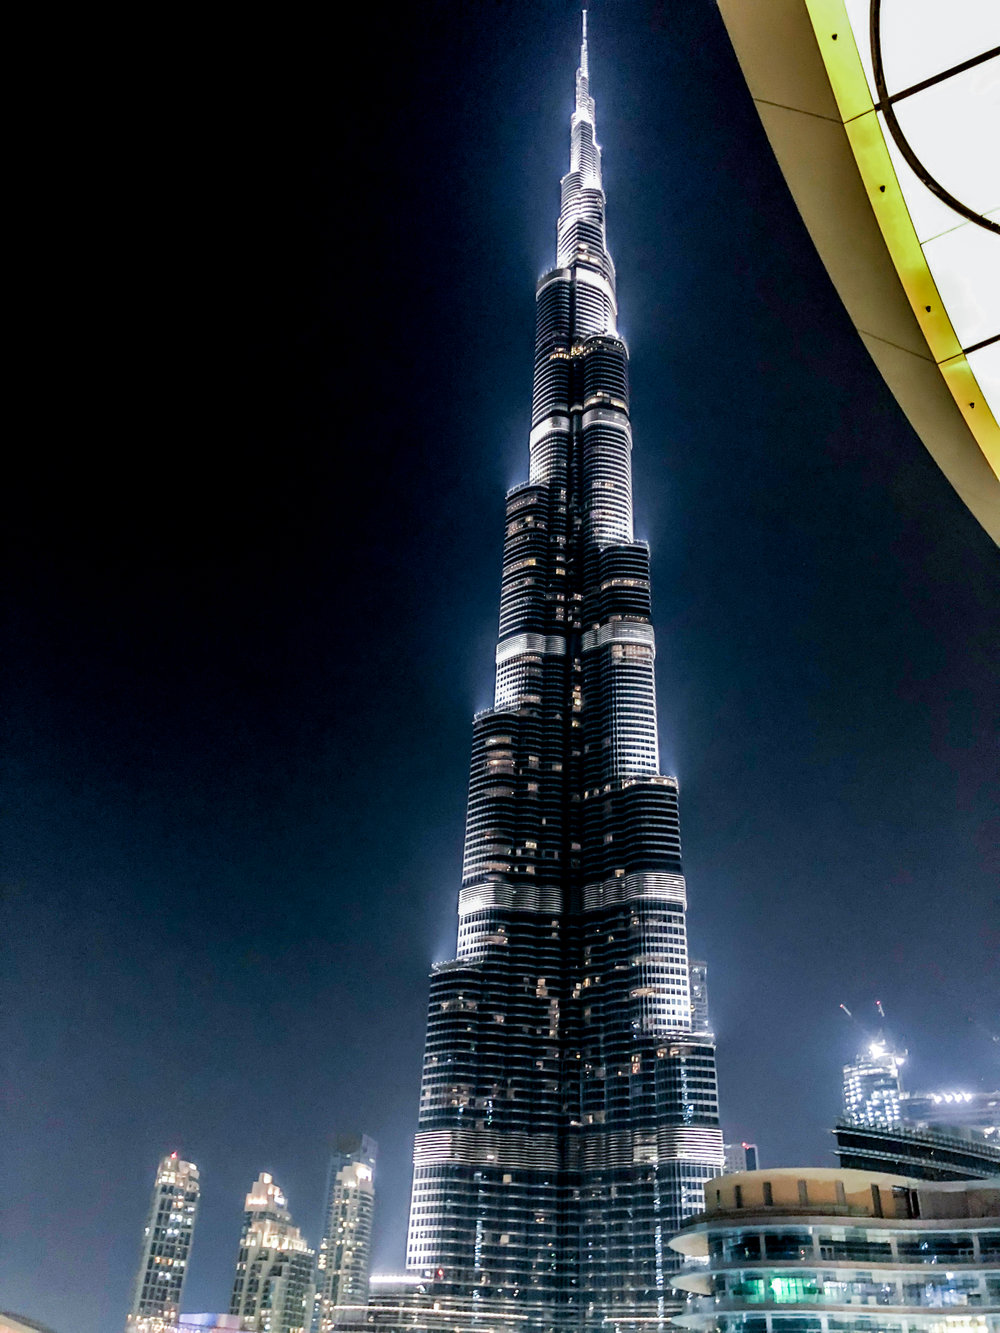 The Burj Khalifa - it is absolutely HUGE!